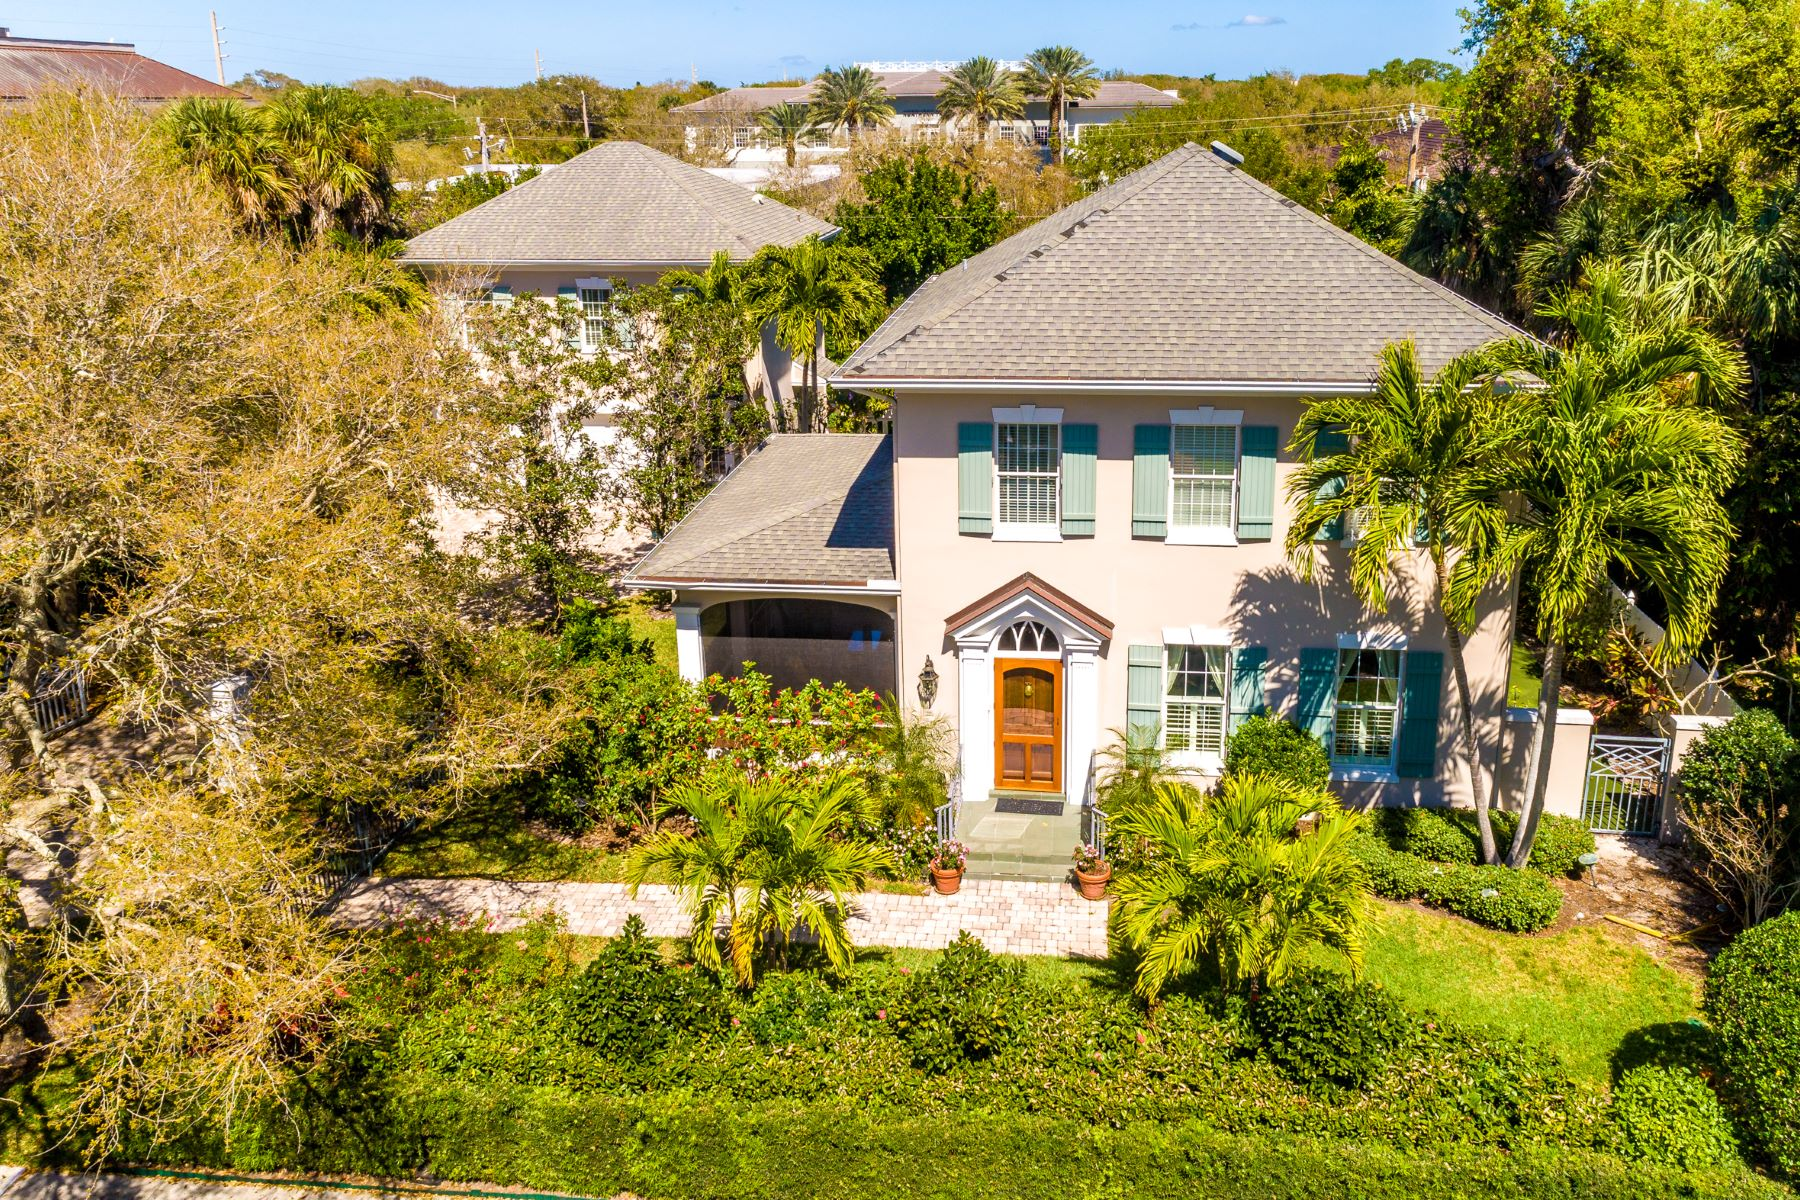 Single Family Homes for Sale at GATED CENTRAL BEACH HOME WITH GUEST APARTMENT 745 Azalea Lane Vero Beach, Florida 32963 United States